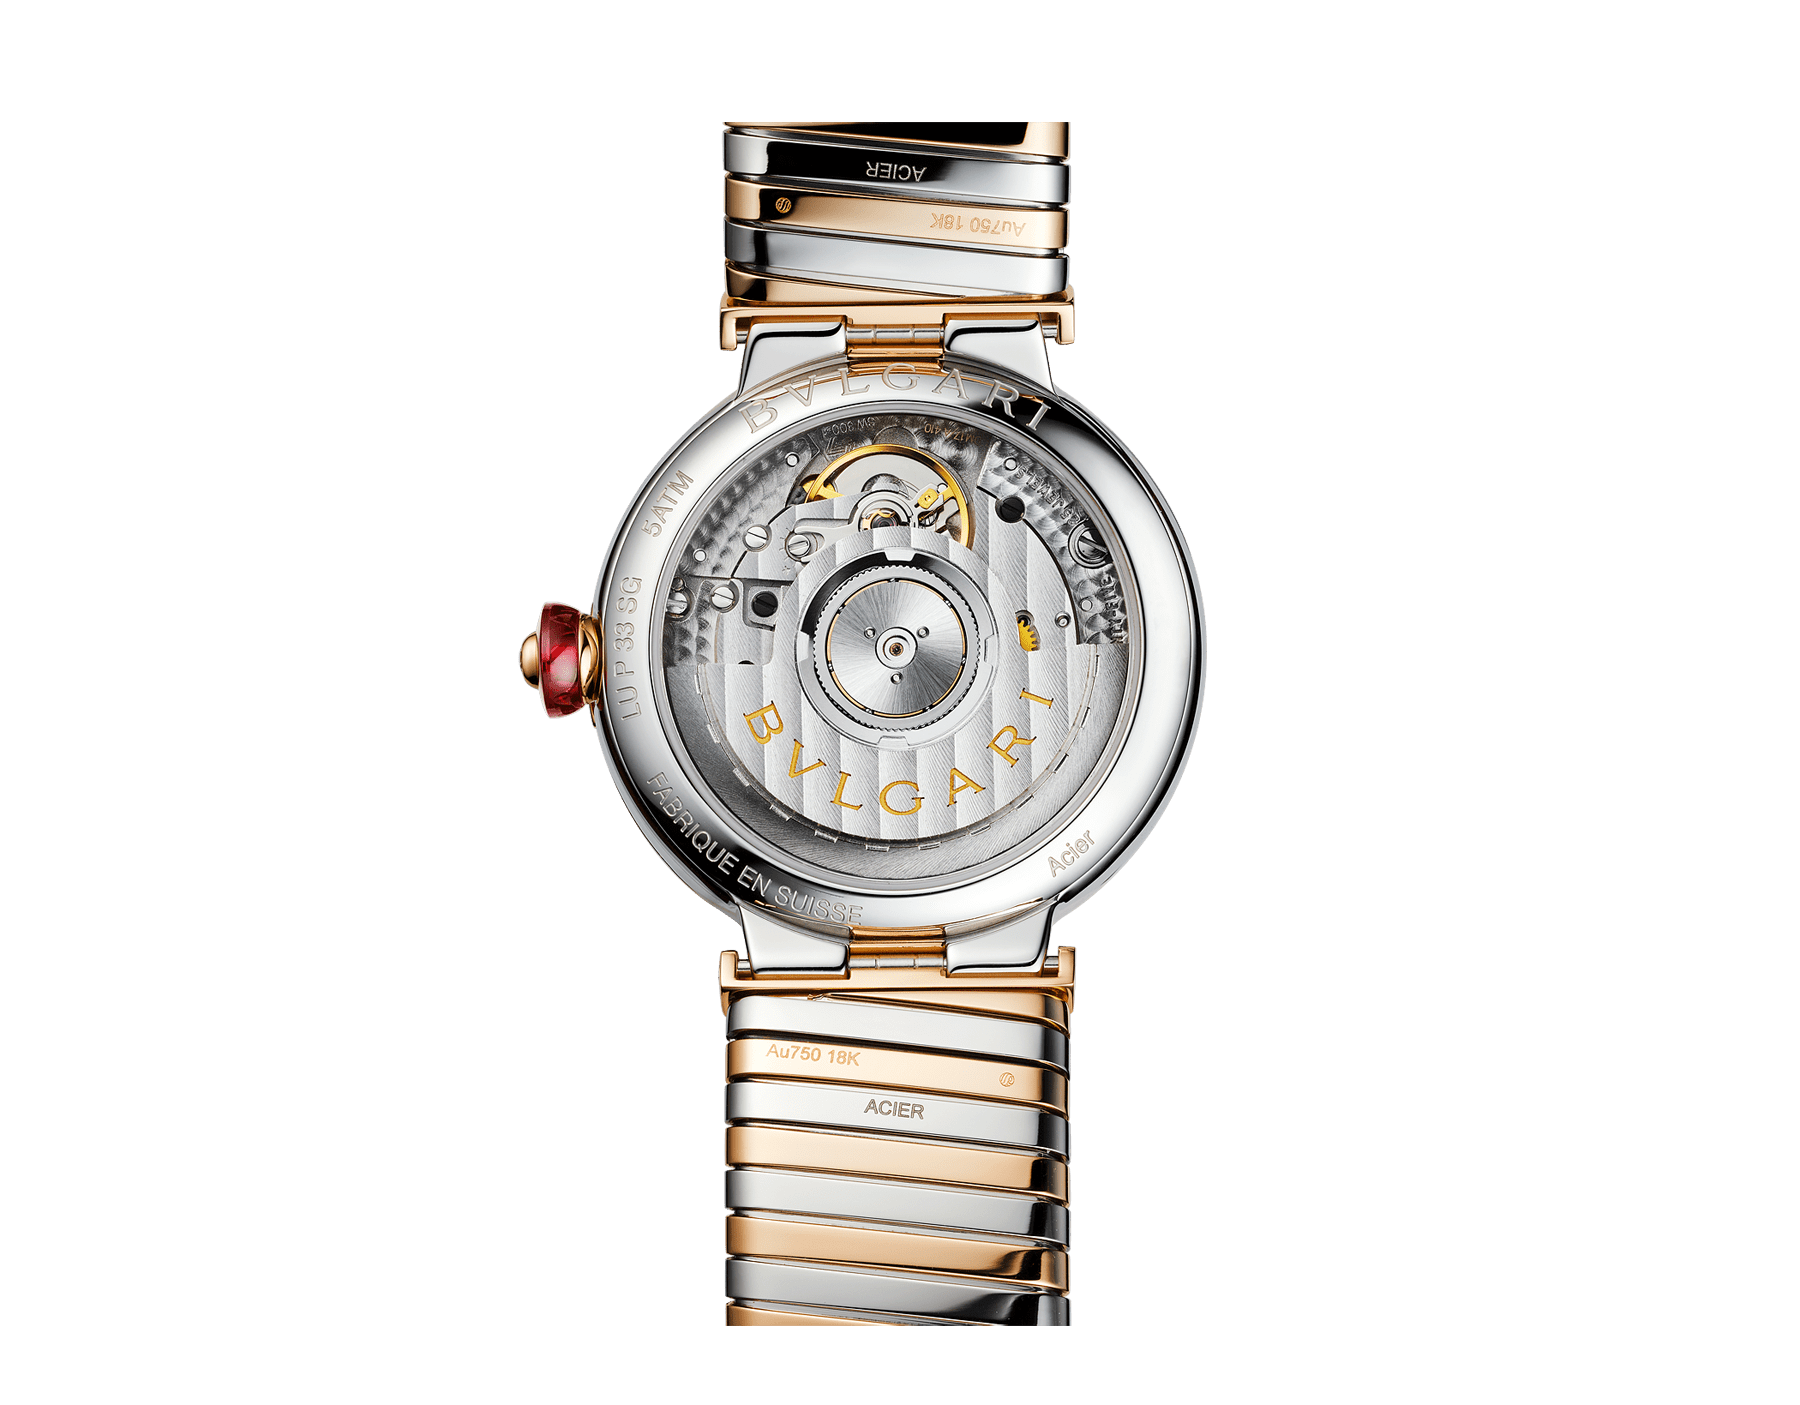 LVCEA Tubogas watch in 18 kt rose gold and stainless steel case and tubogas bracelet, with white mother-of-pearl dial and diamond indexes 102954 image 3